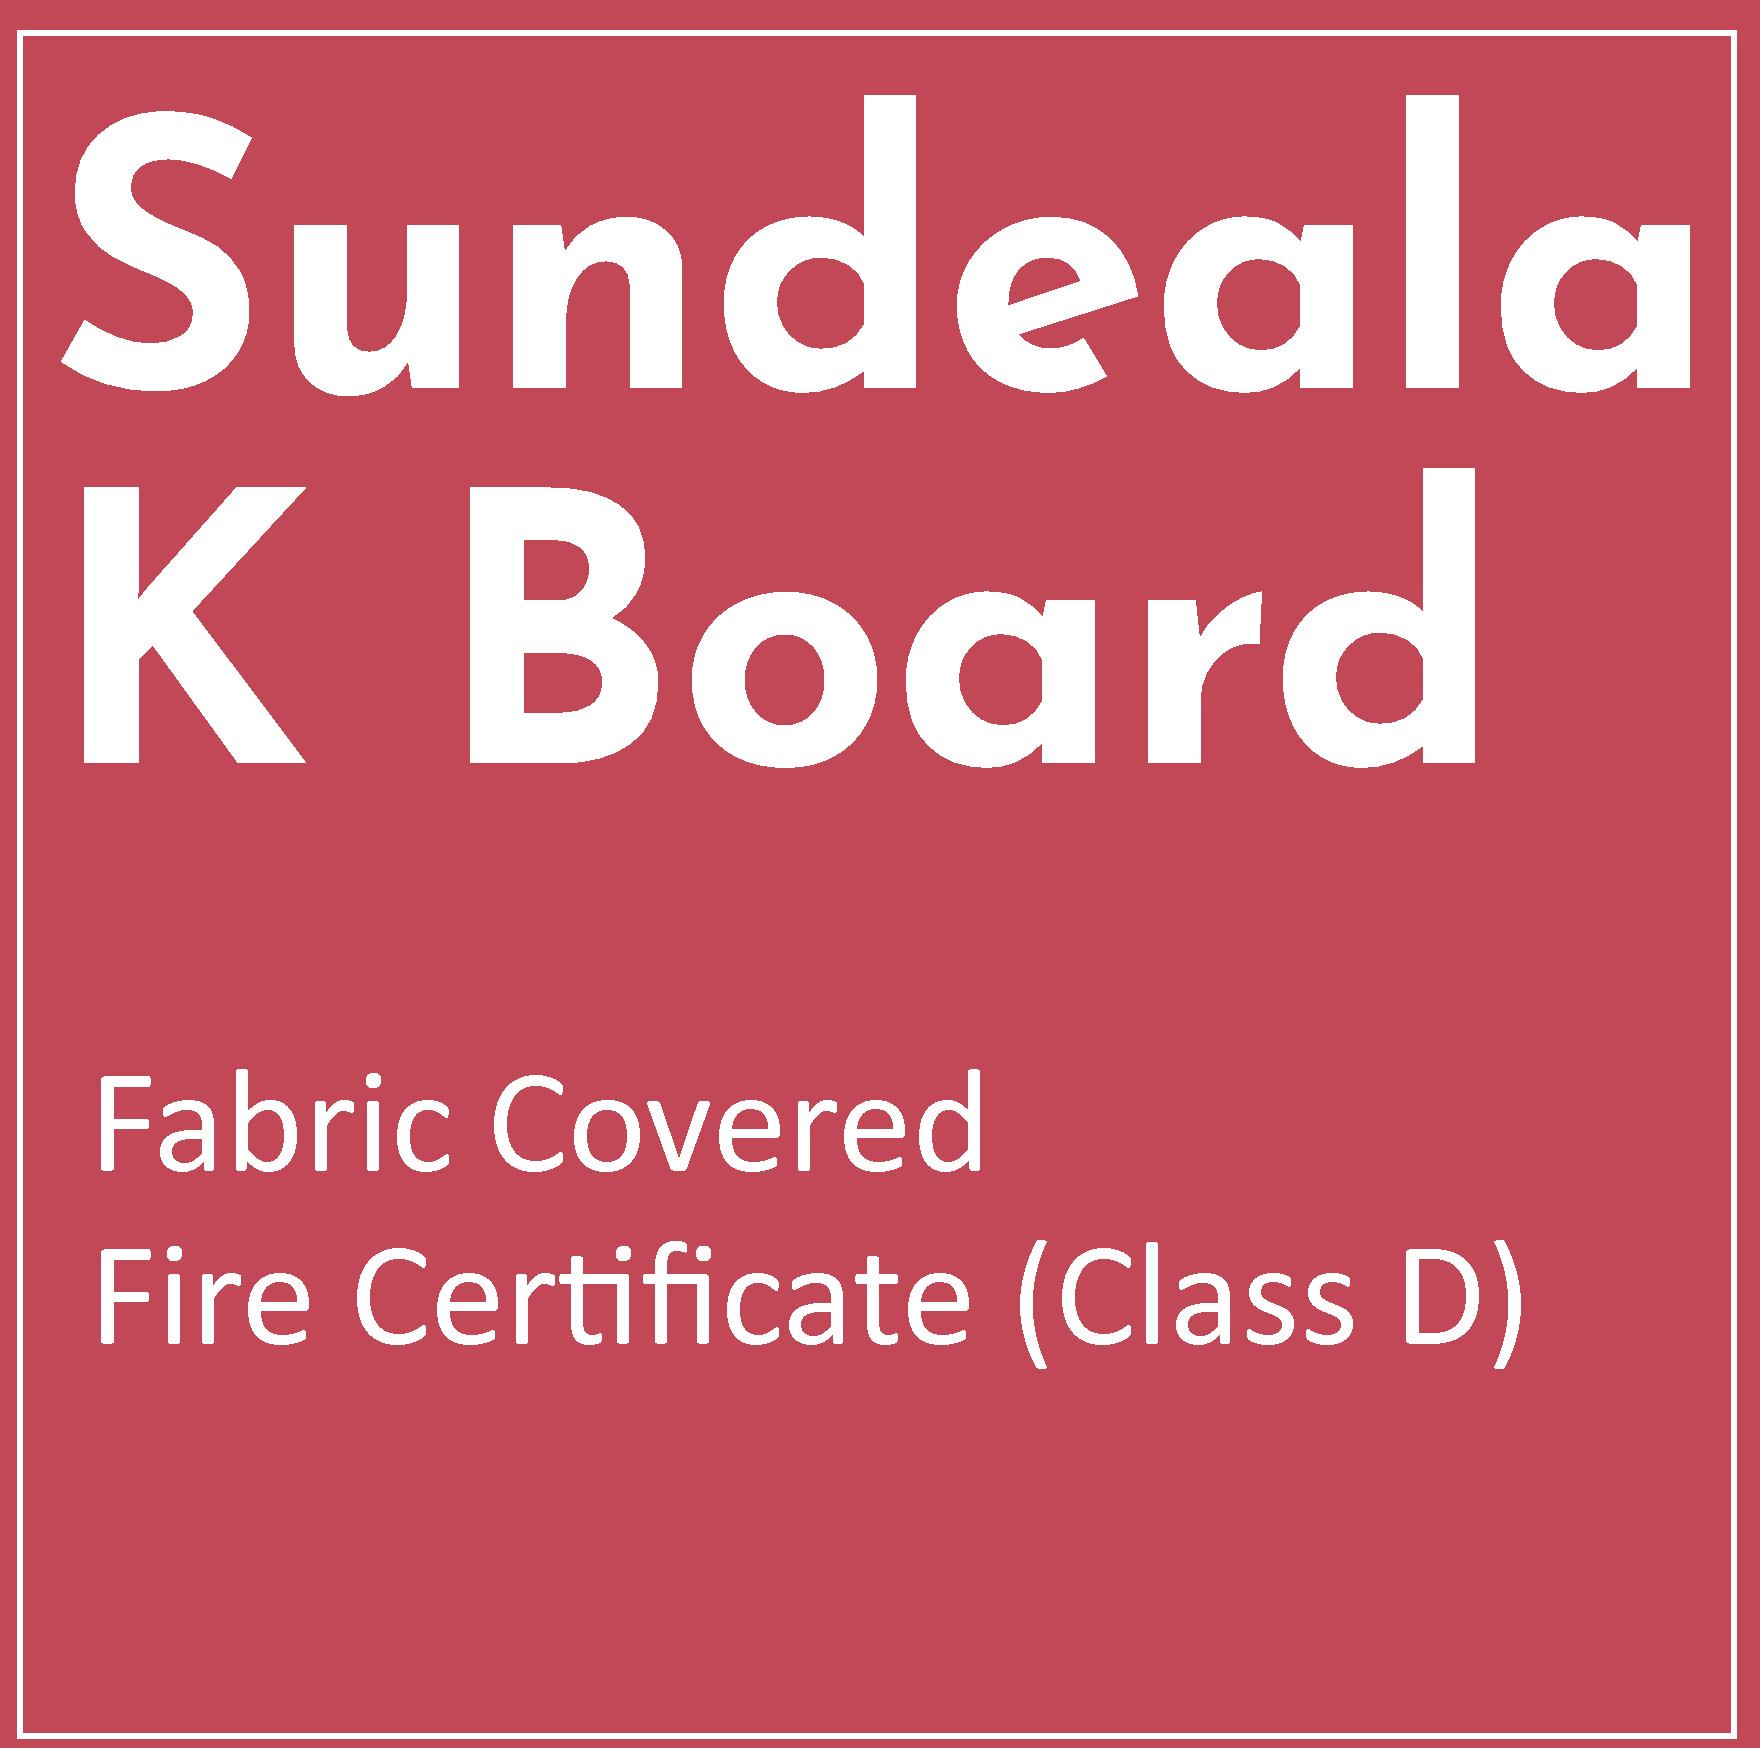 Fire Information for Sundeala K Fabric Covered Boards